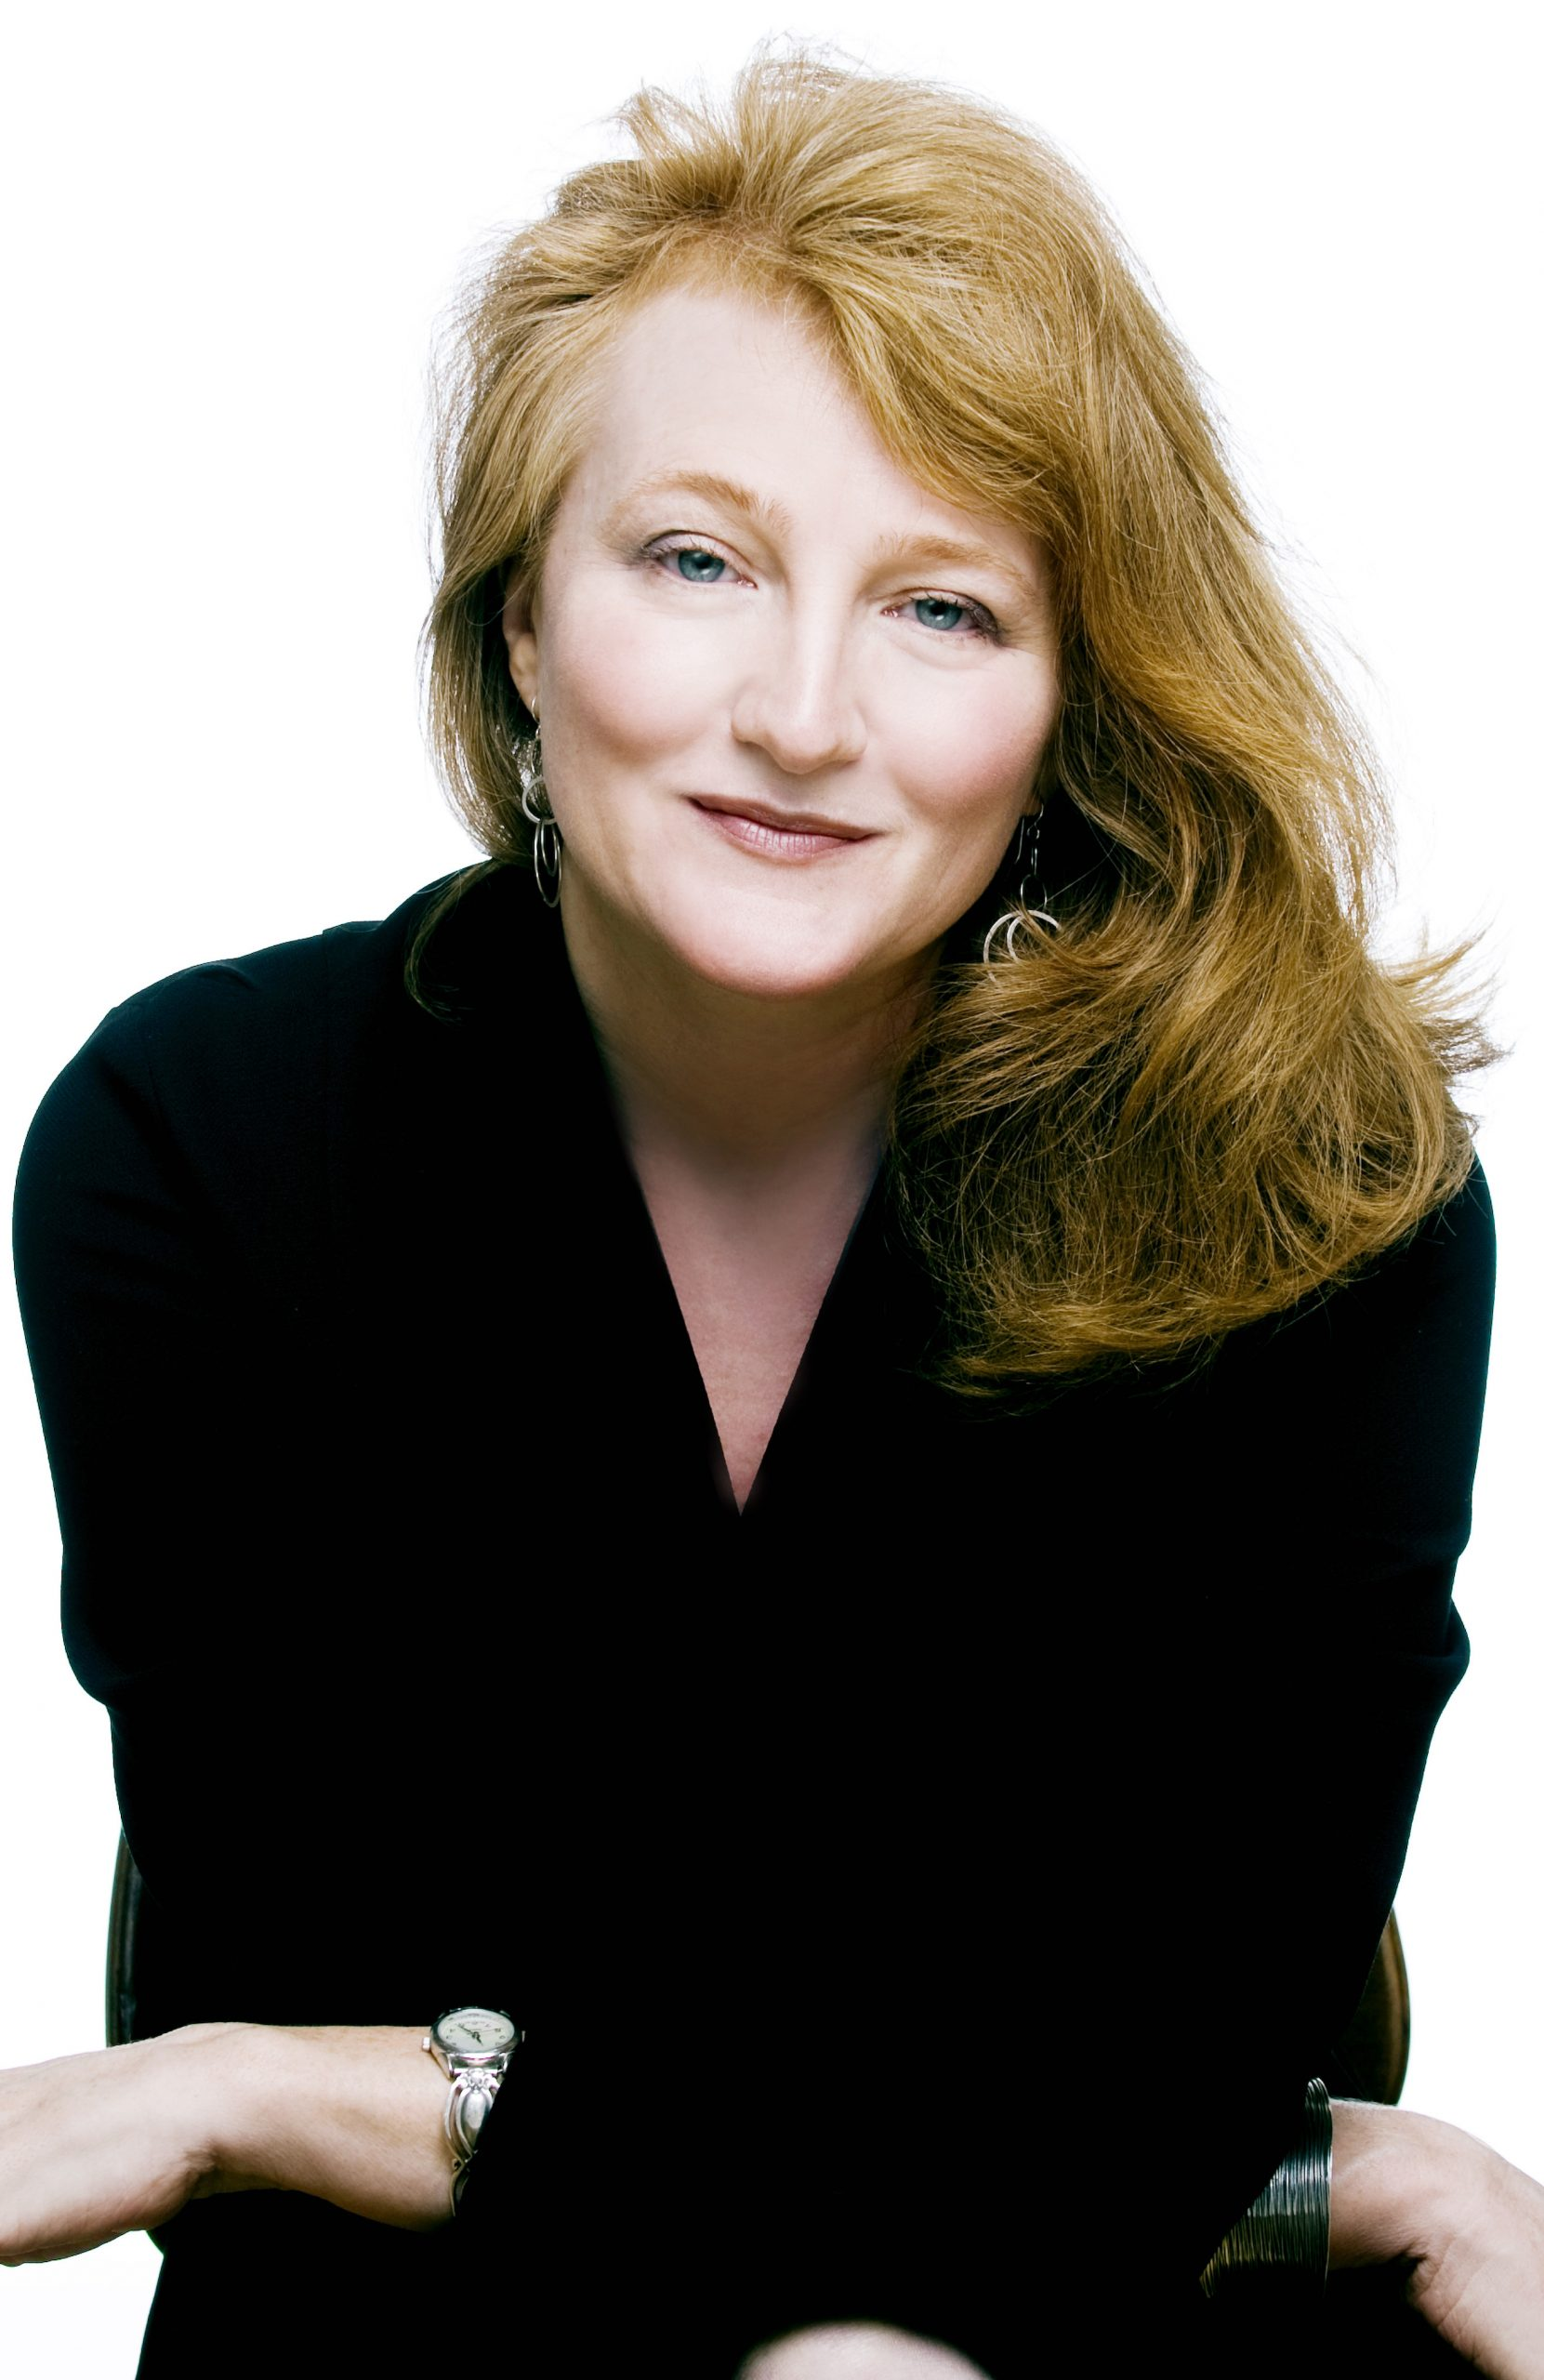 Host Krista Tippett will deliver this year's McMurrin lecture on religion and culture.